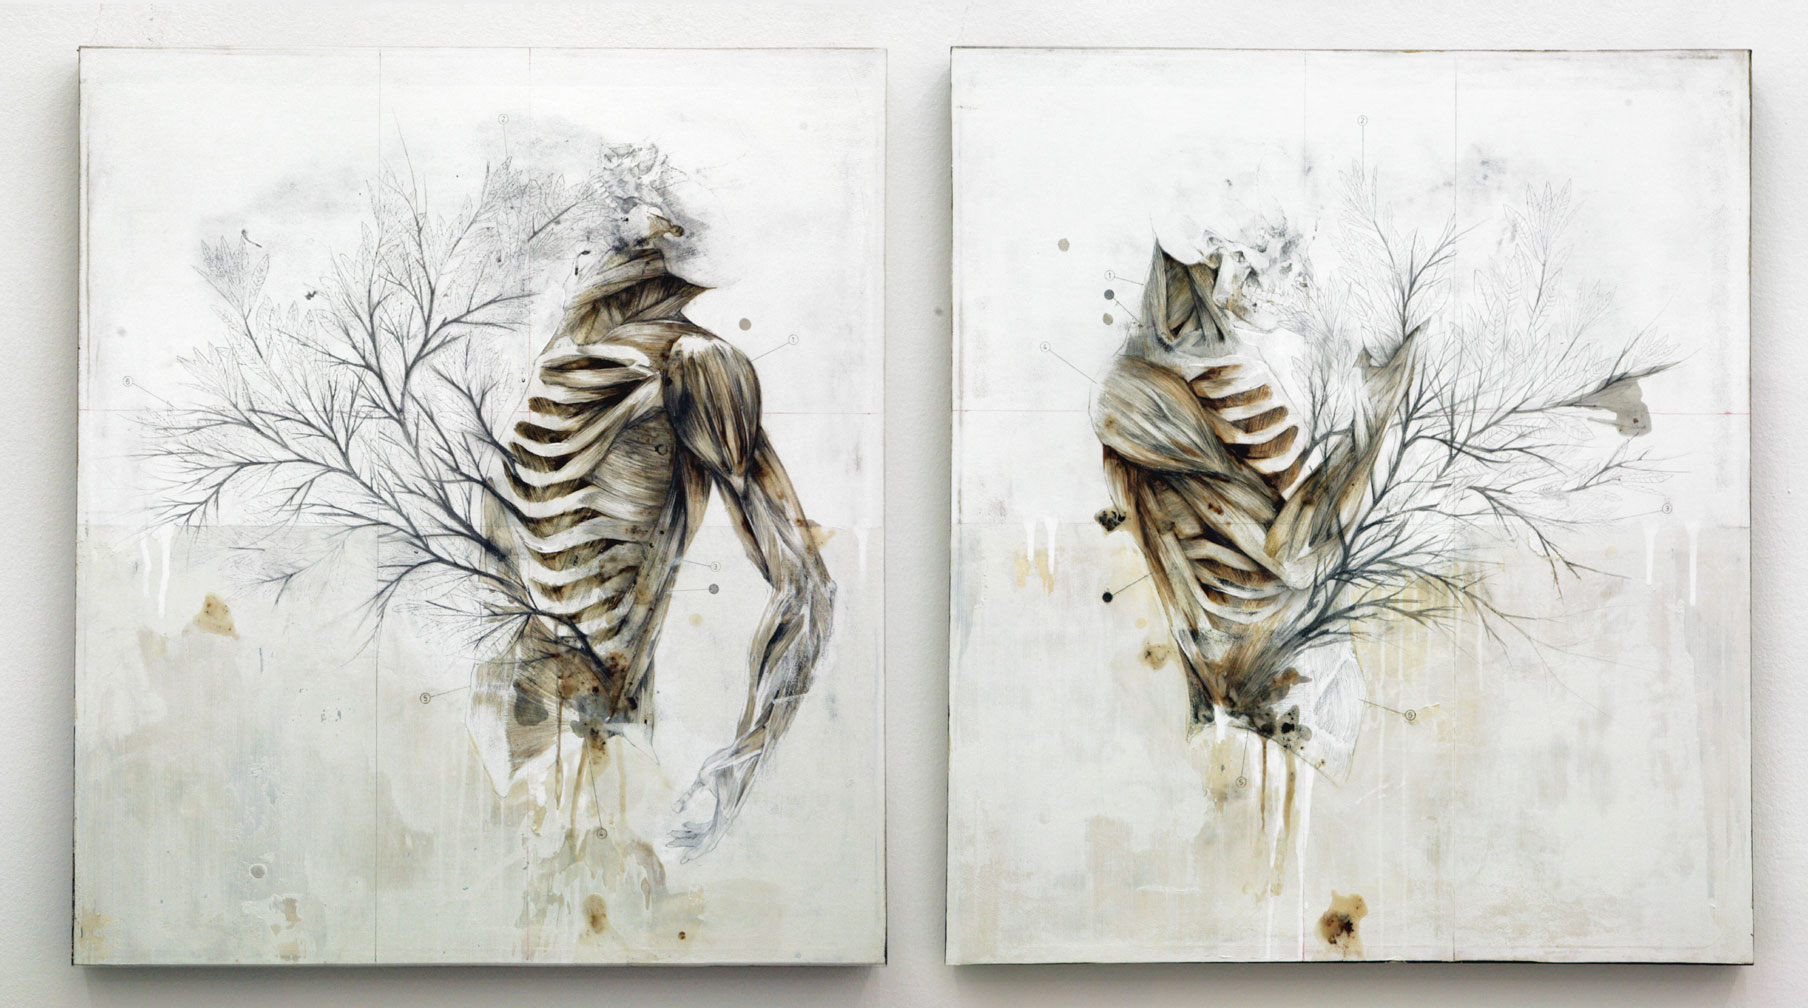 Plants, Animals and People Share Common Anatomy in This Incredible Artist's Work.